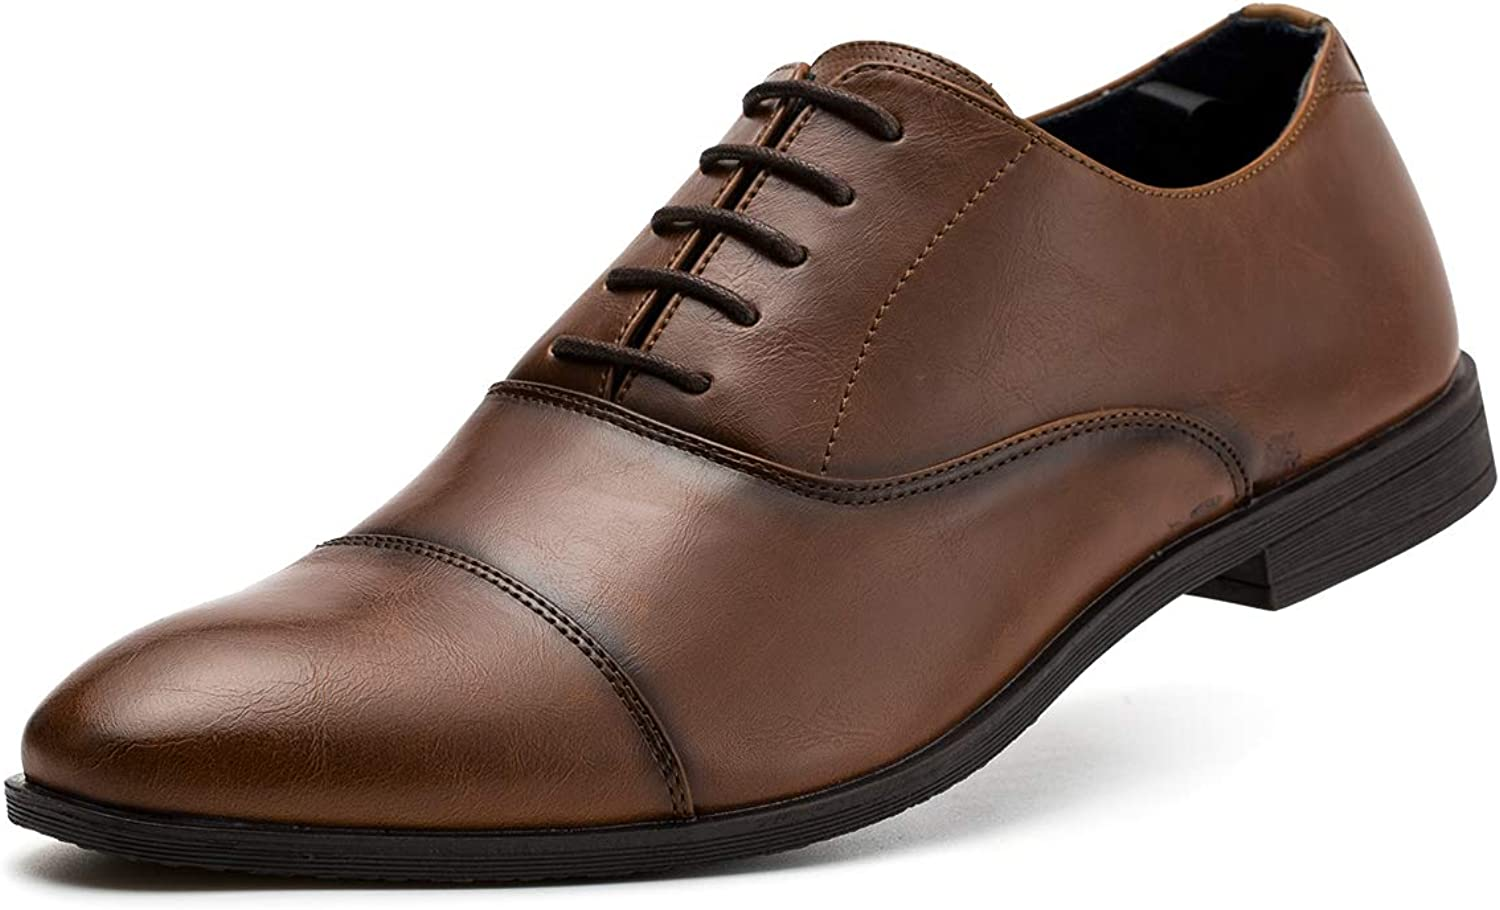 Jivana Mens Oxford Busniess Dress shoes Classic Lace-up